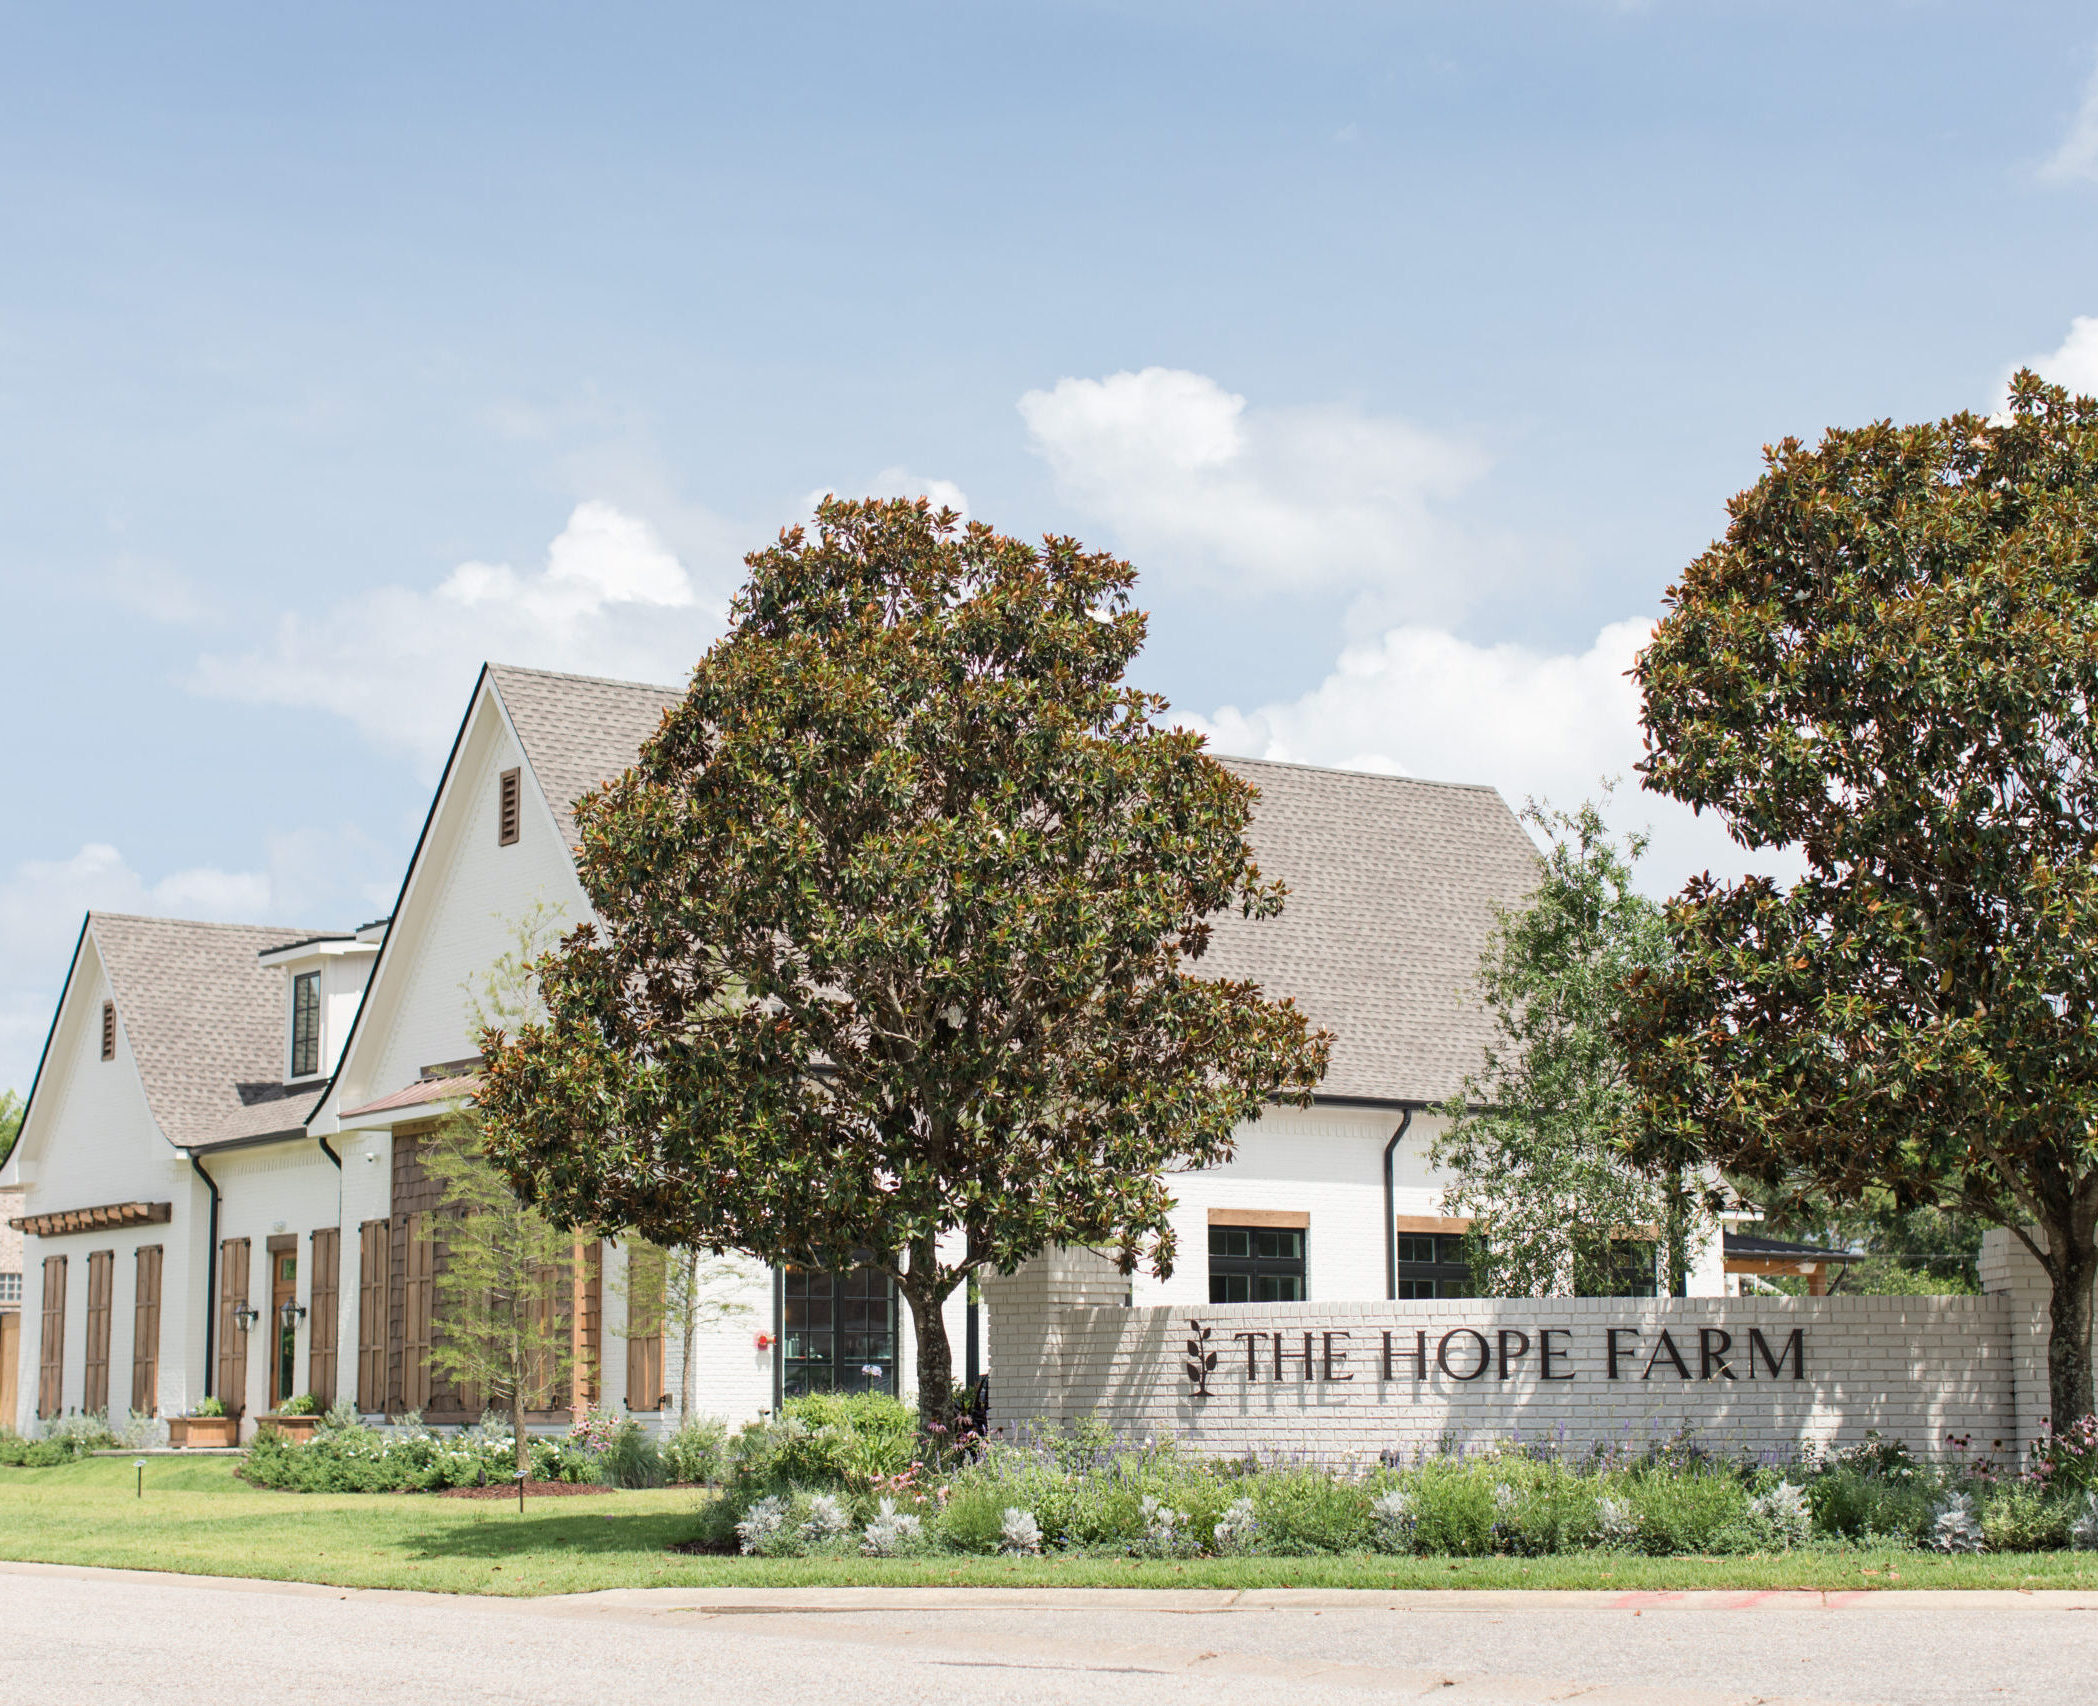 The Hope Farm